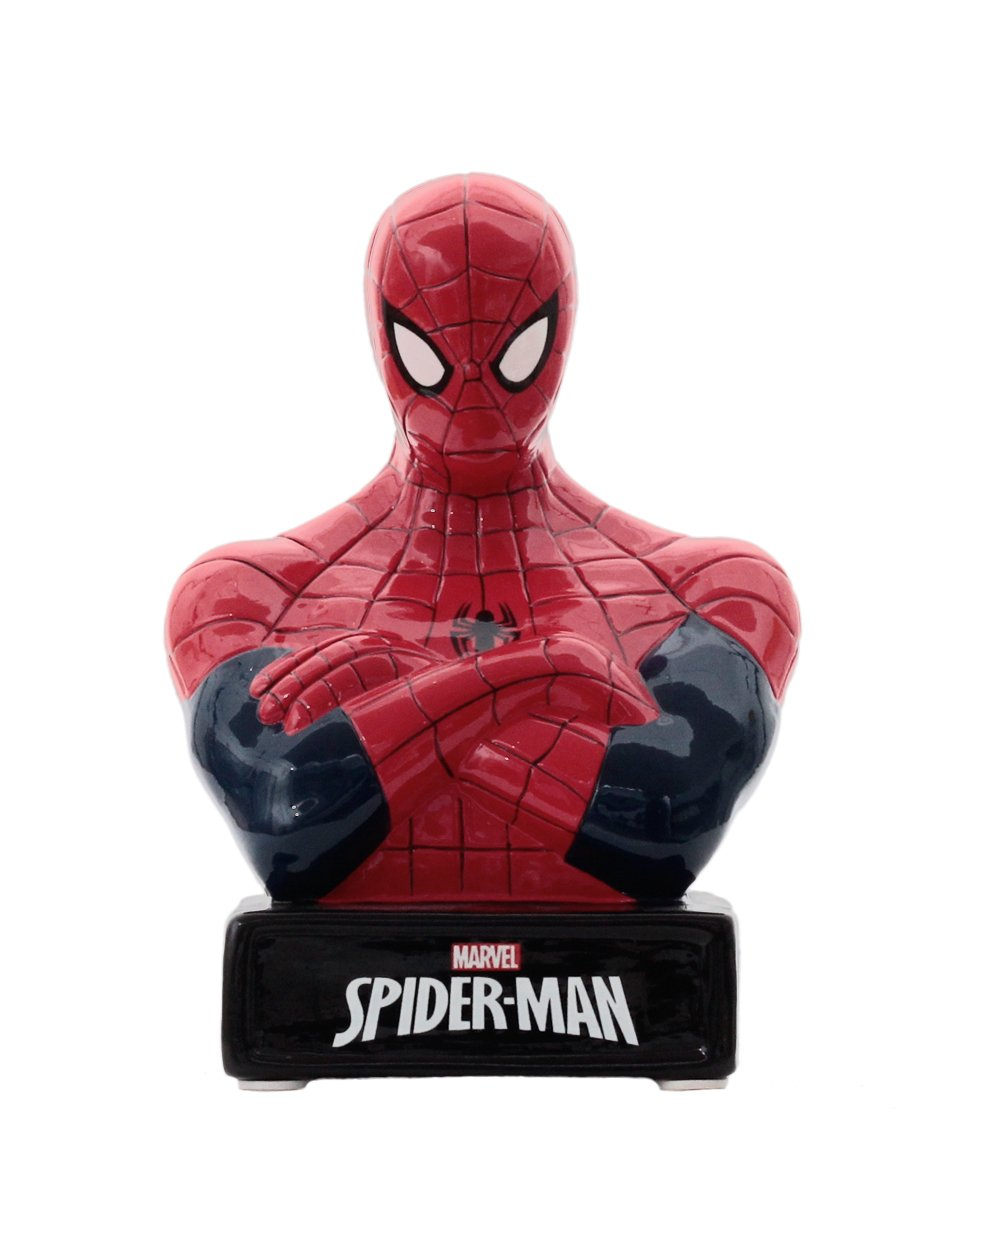 Marvel Spiderman Ceramic Bank in Official Marvel Box One Size by UPD